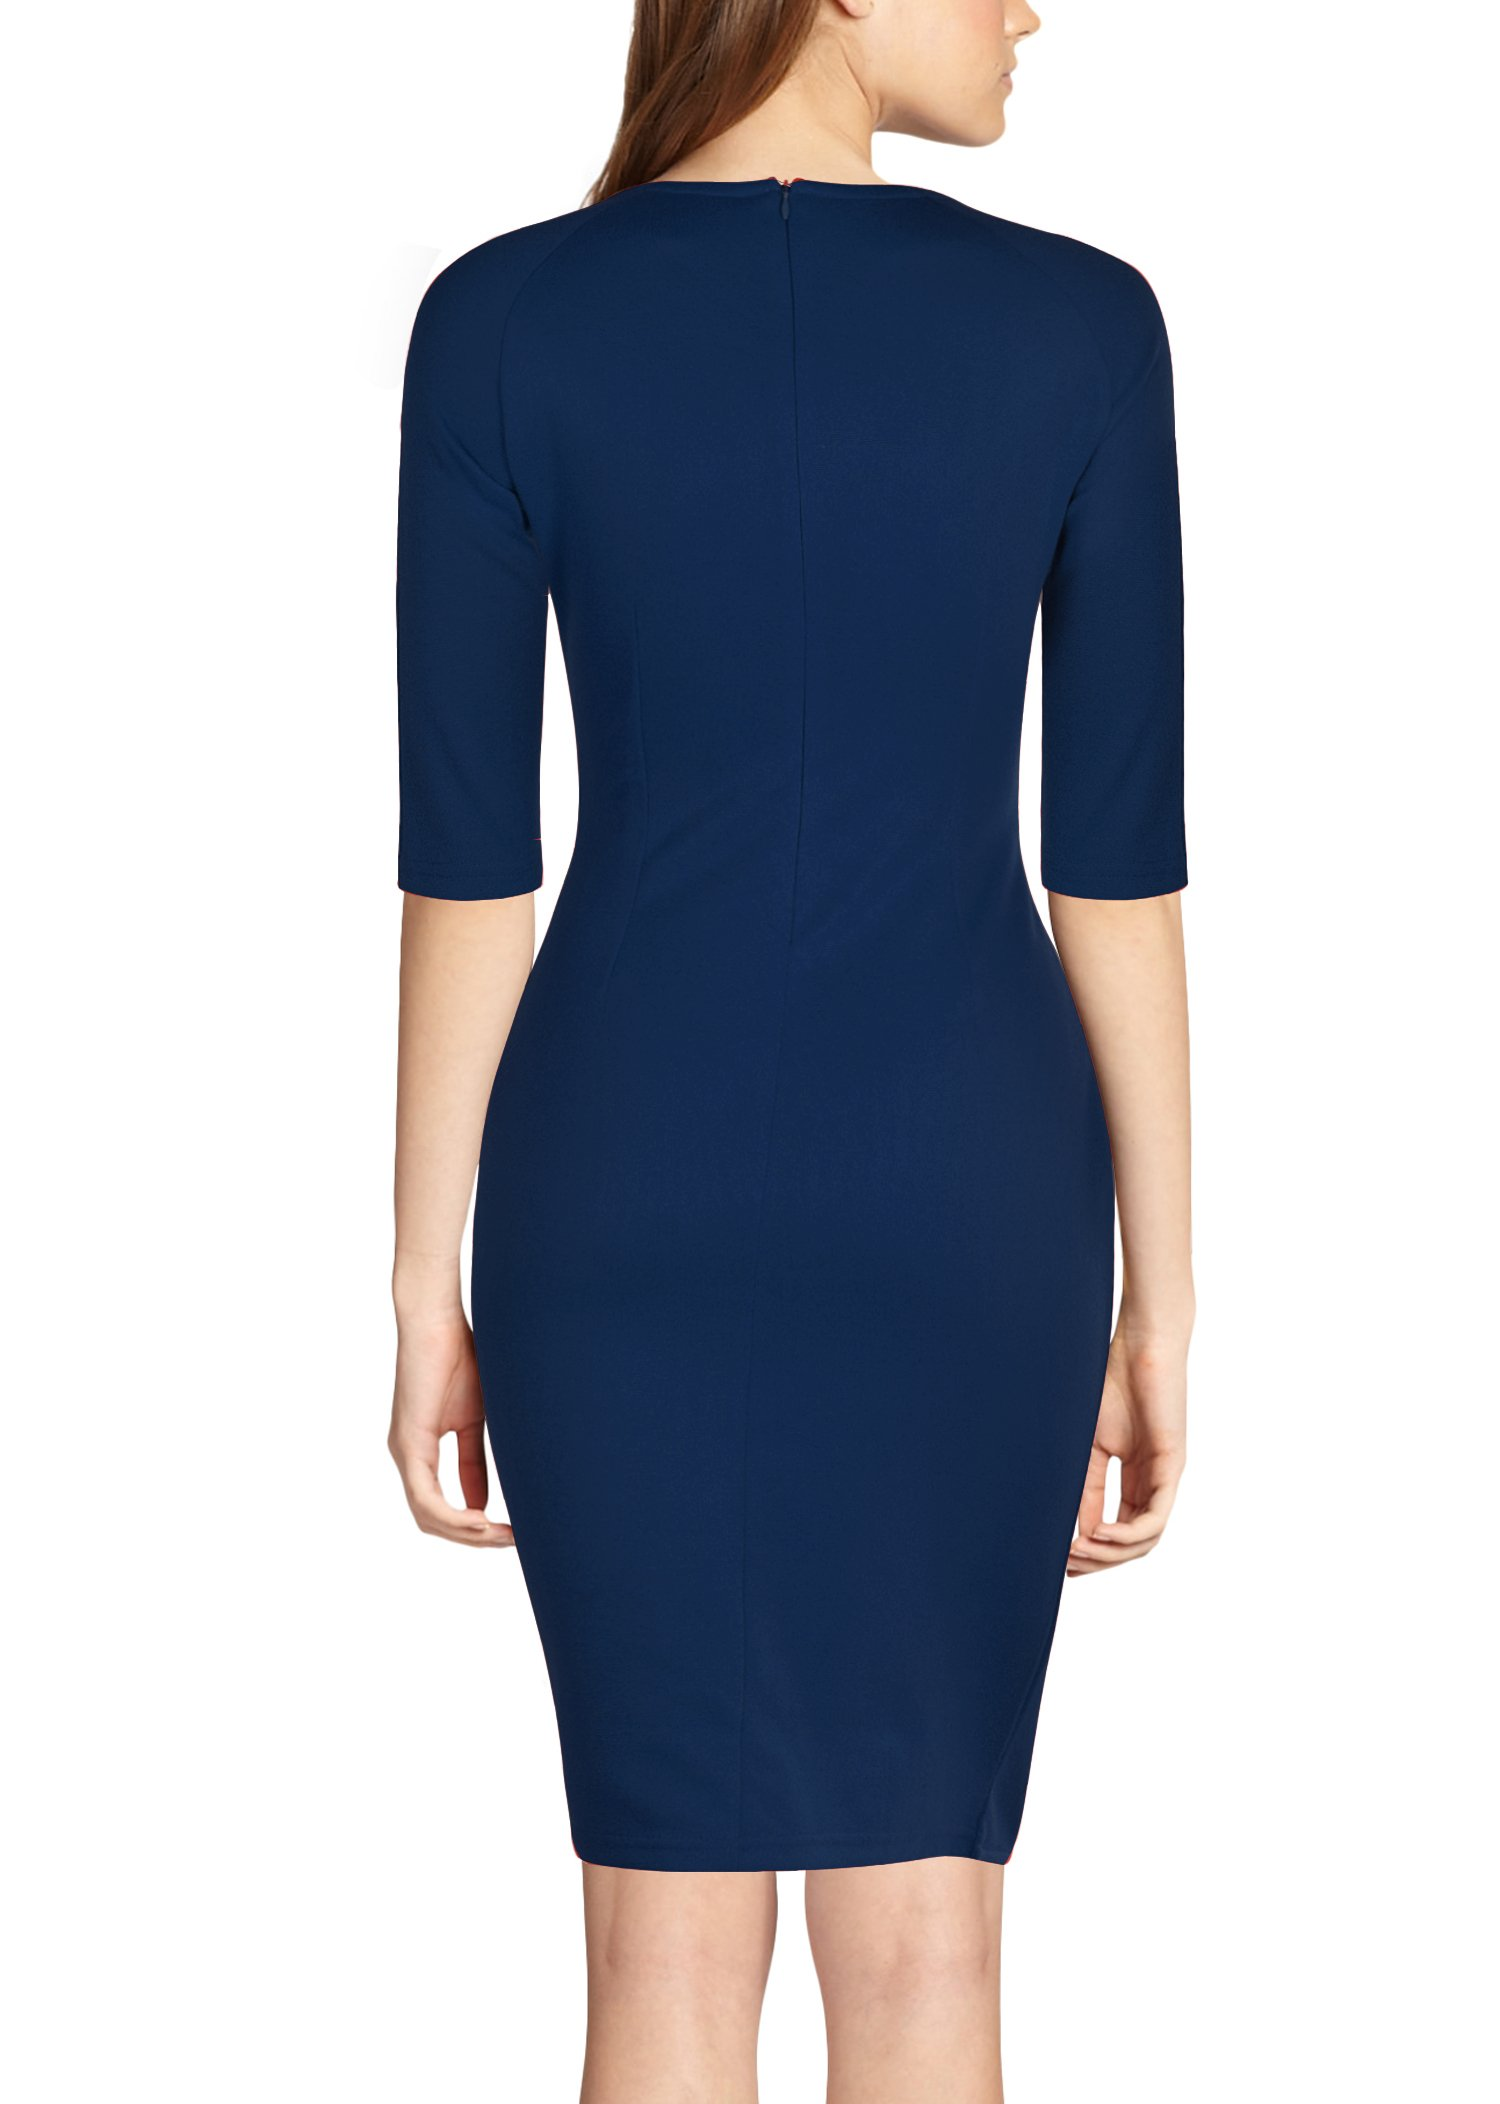 REPHYLLIS Women's Official v Neck Optical Illusion Half Sleeve Business Dress S Darkblue by REPHYLLIS (Image #2)